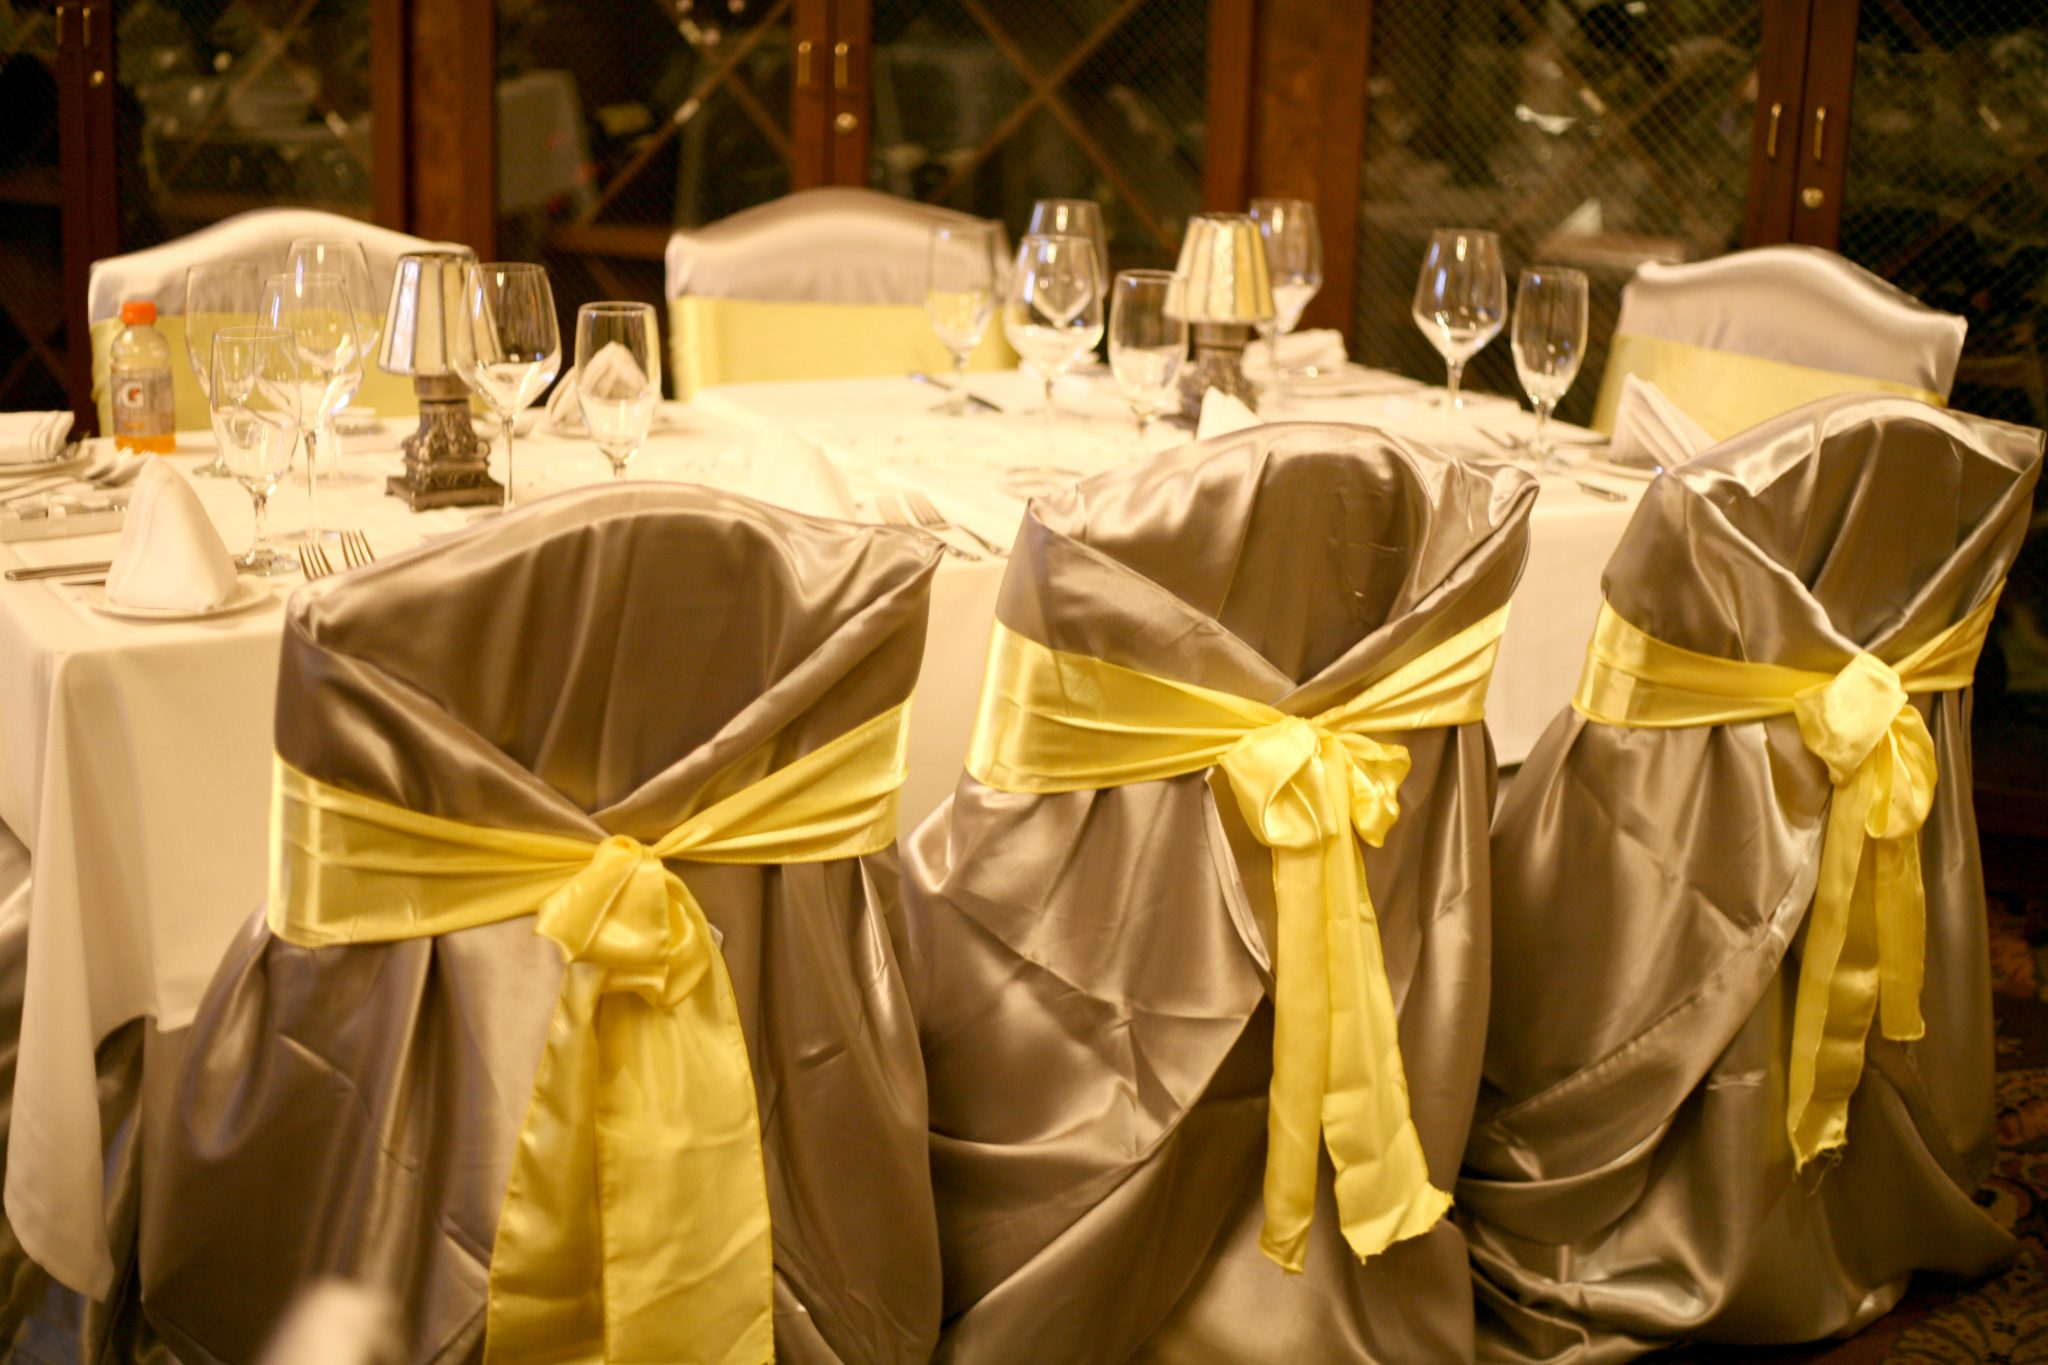 tablecloths and chair covers for rent swing chain linens baltimore s best events confettis tropical gardenwedding jpg silver cover yellow sash2